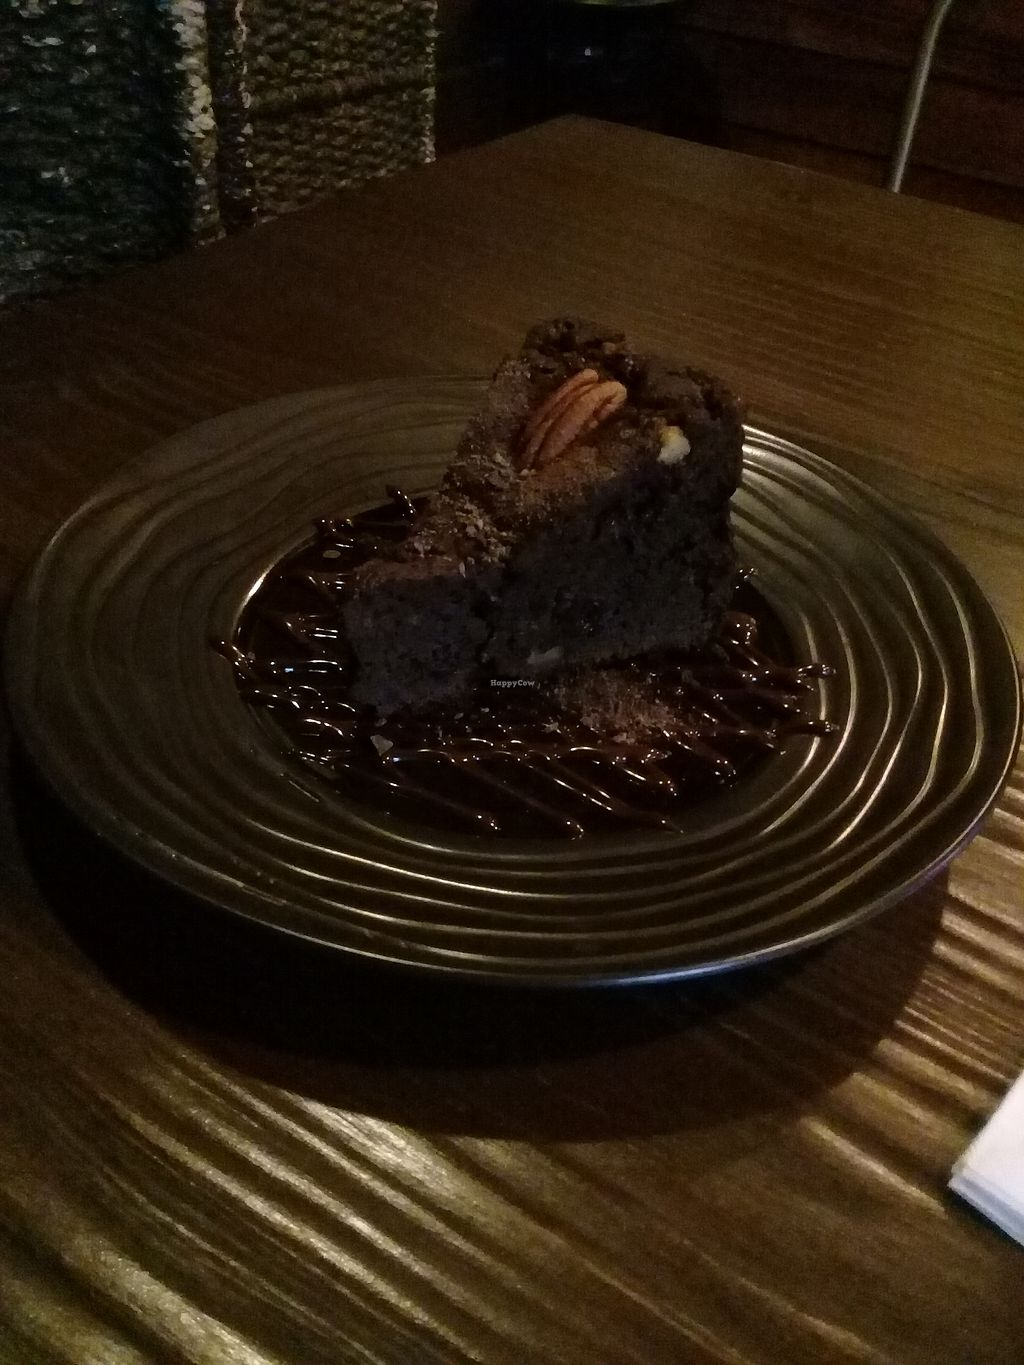 """Photo of Soul R. Vegan Cafe  by <a href=""""/members/profile/Smolphi"""">Smolphi</a> <br/>Brownie <br/> March 21, 2018  - <a href='/contact/abuse/image/51321/373840'>Report</a>"""